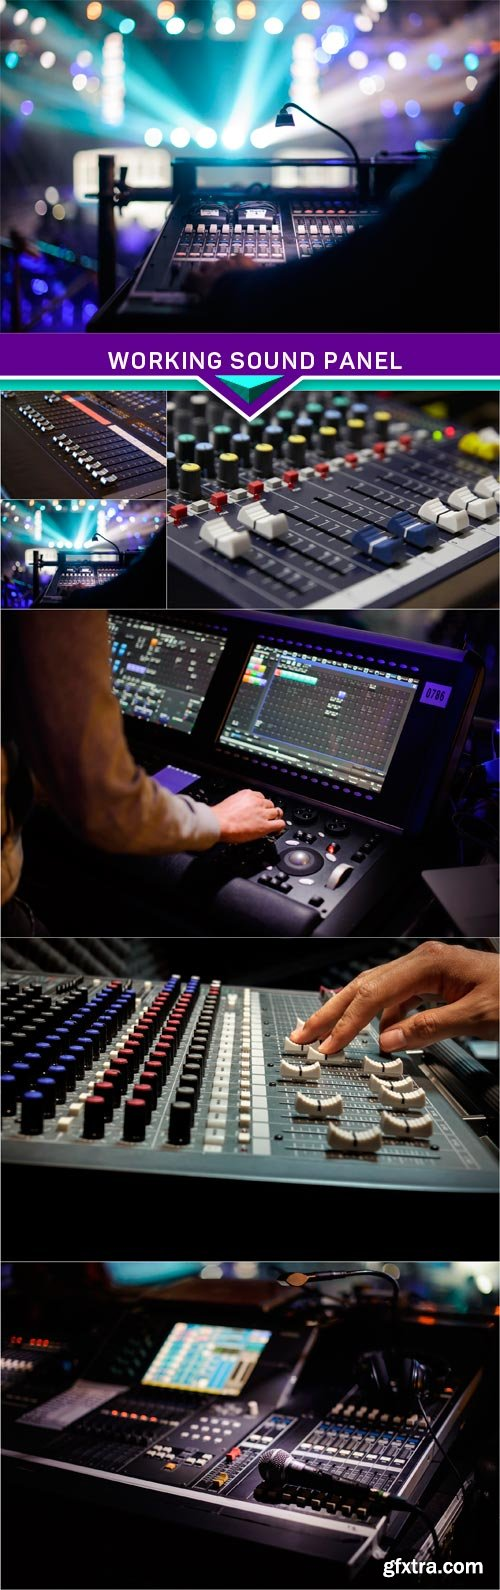 Working sound panel on background of the stage 6x JPEG